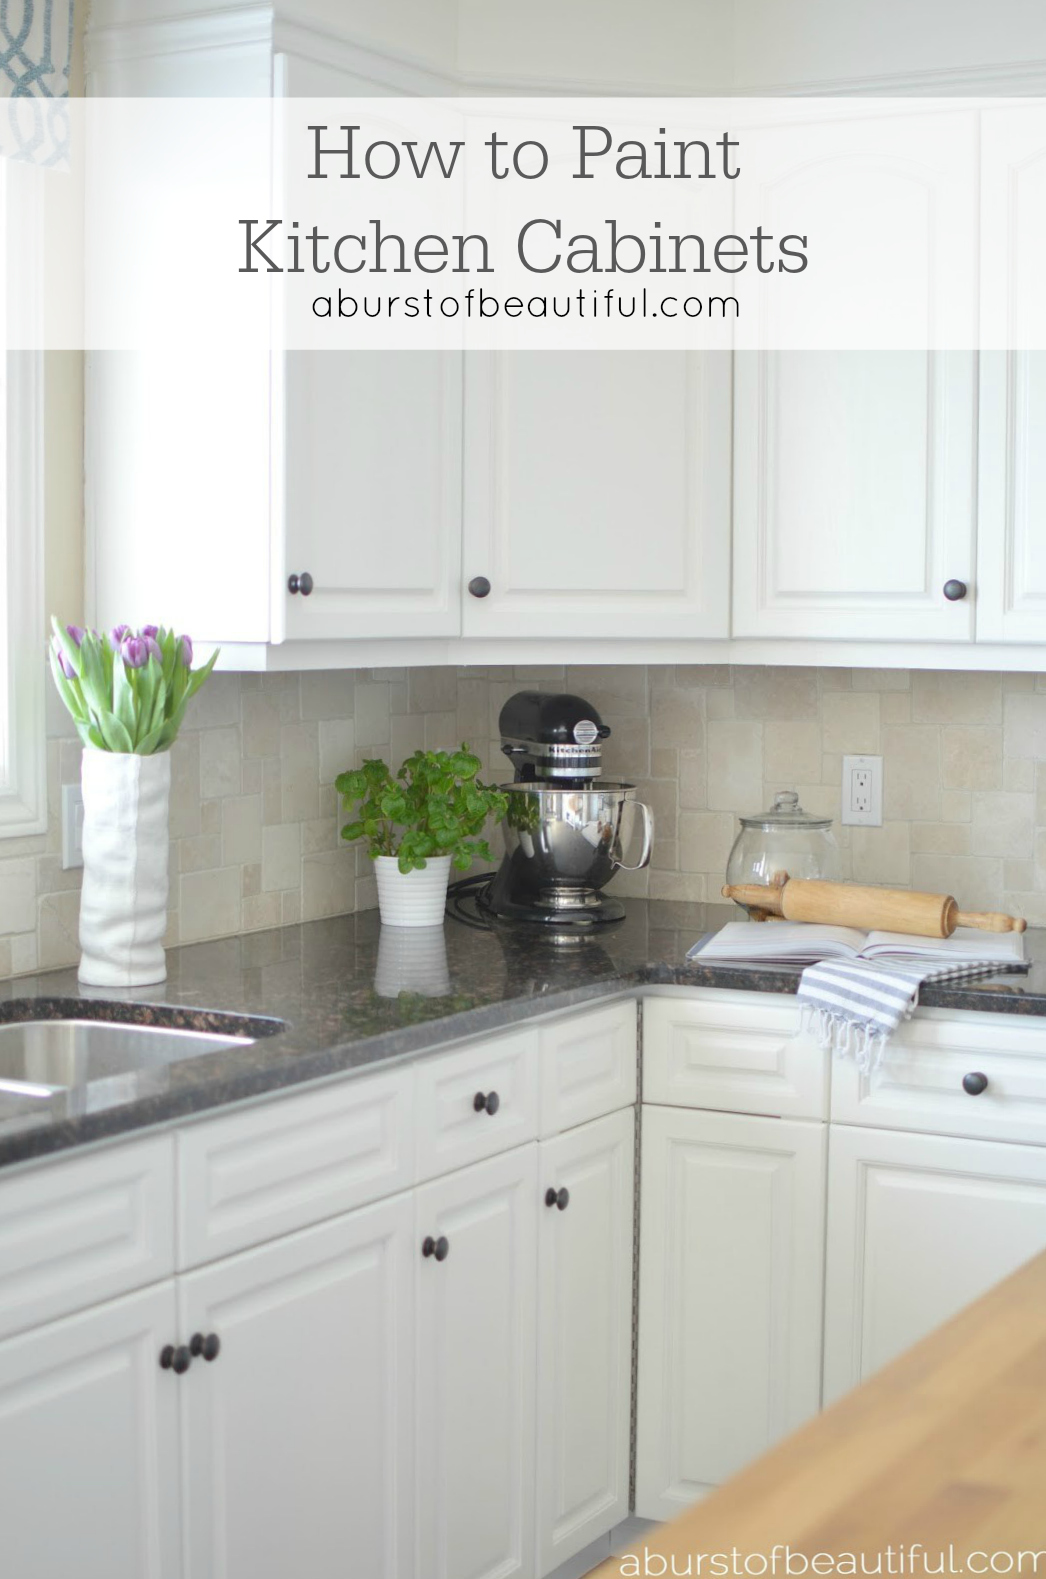 How to paint kitchen cabinets a burst of beautiful for Painting kitchen cabinets